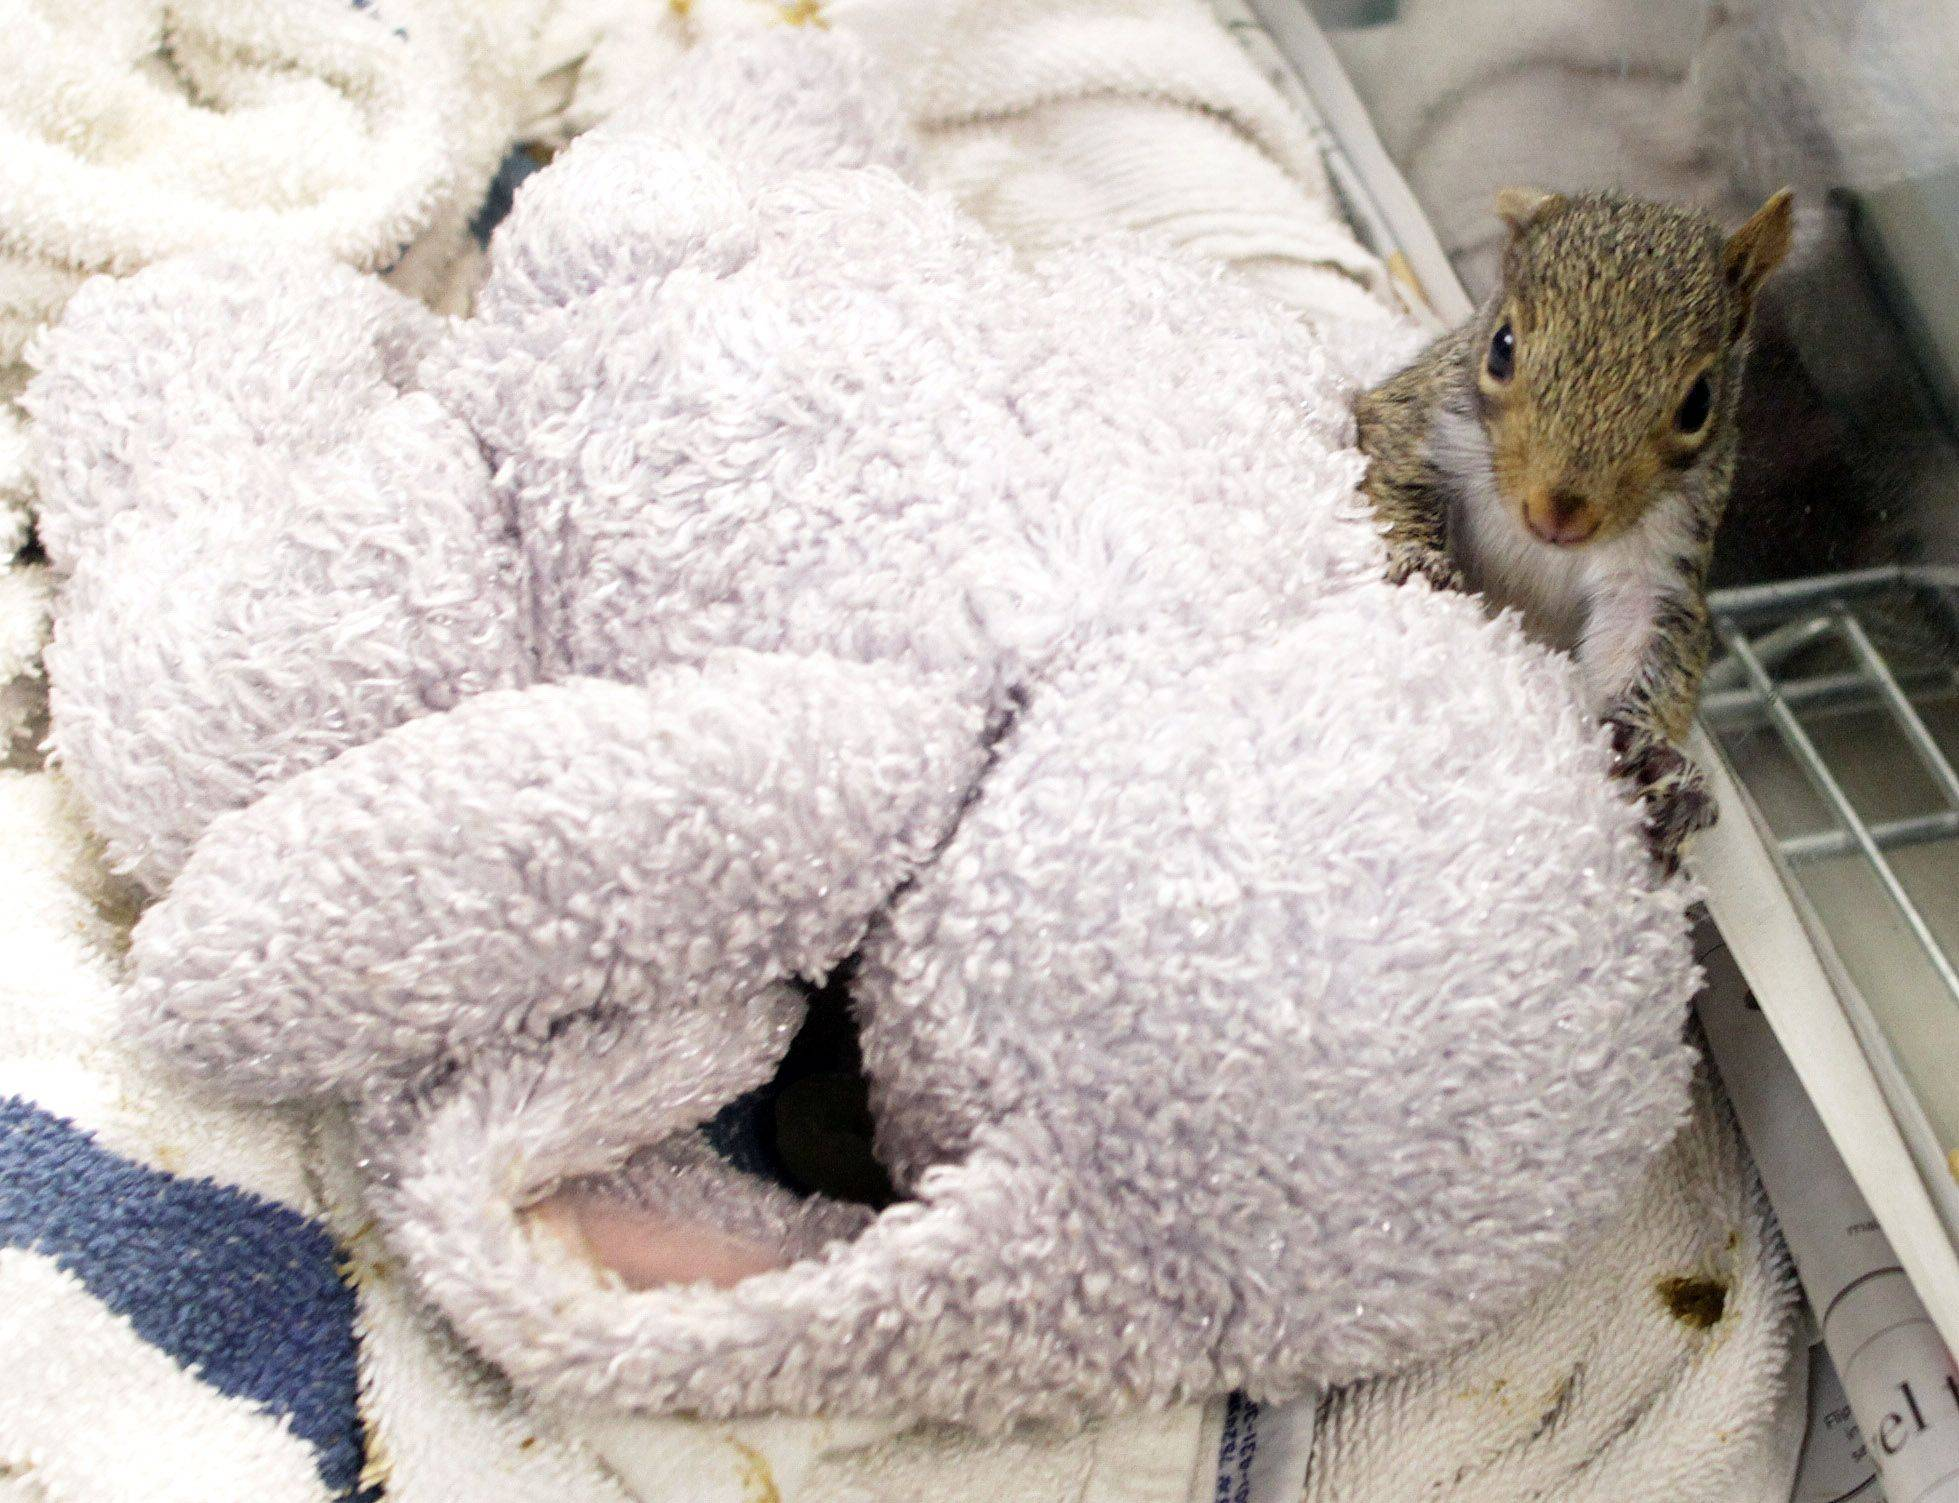 A squirrel about four weeks old sits beside a stuffed animal, which provides a hiding place and comfort during his care at the Willowbrook Wildlife Center in Glen Ellyn.